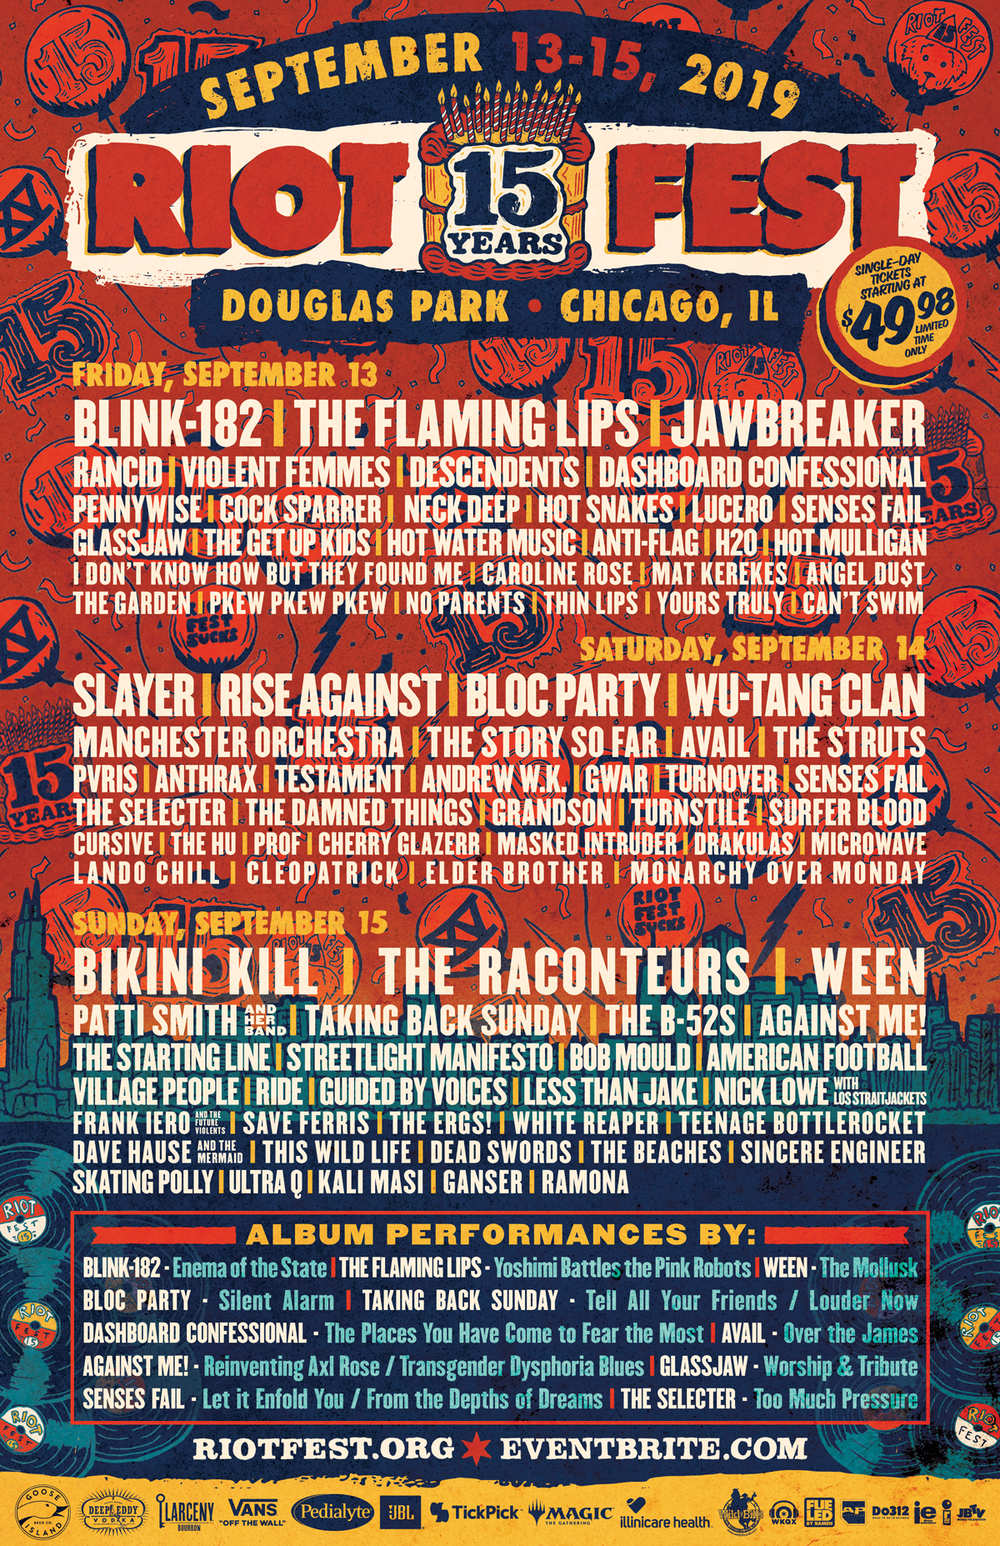 Flyer provided by Riot Fest